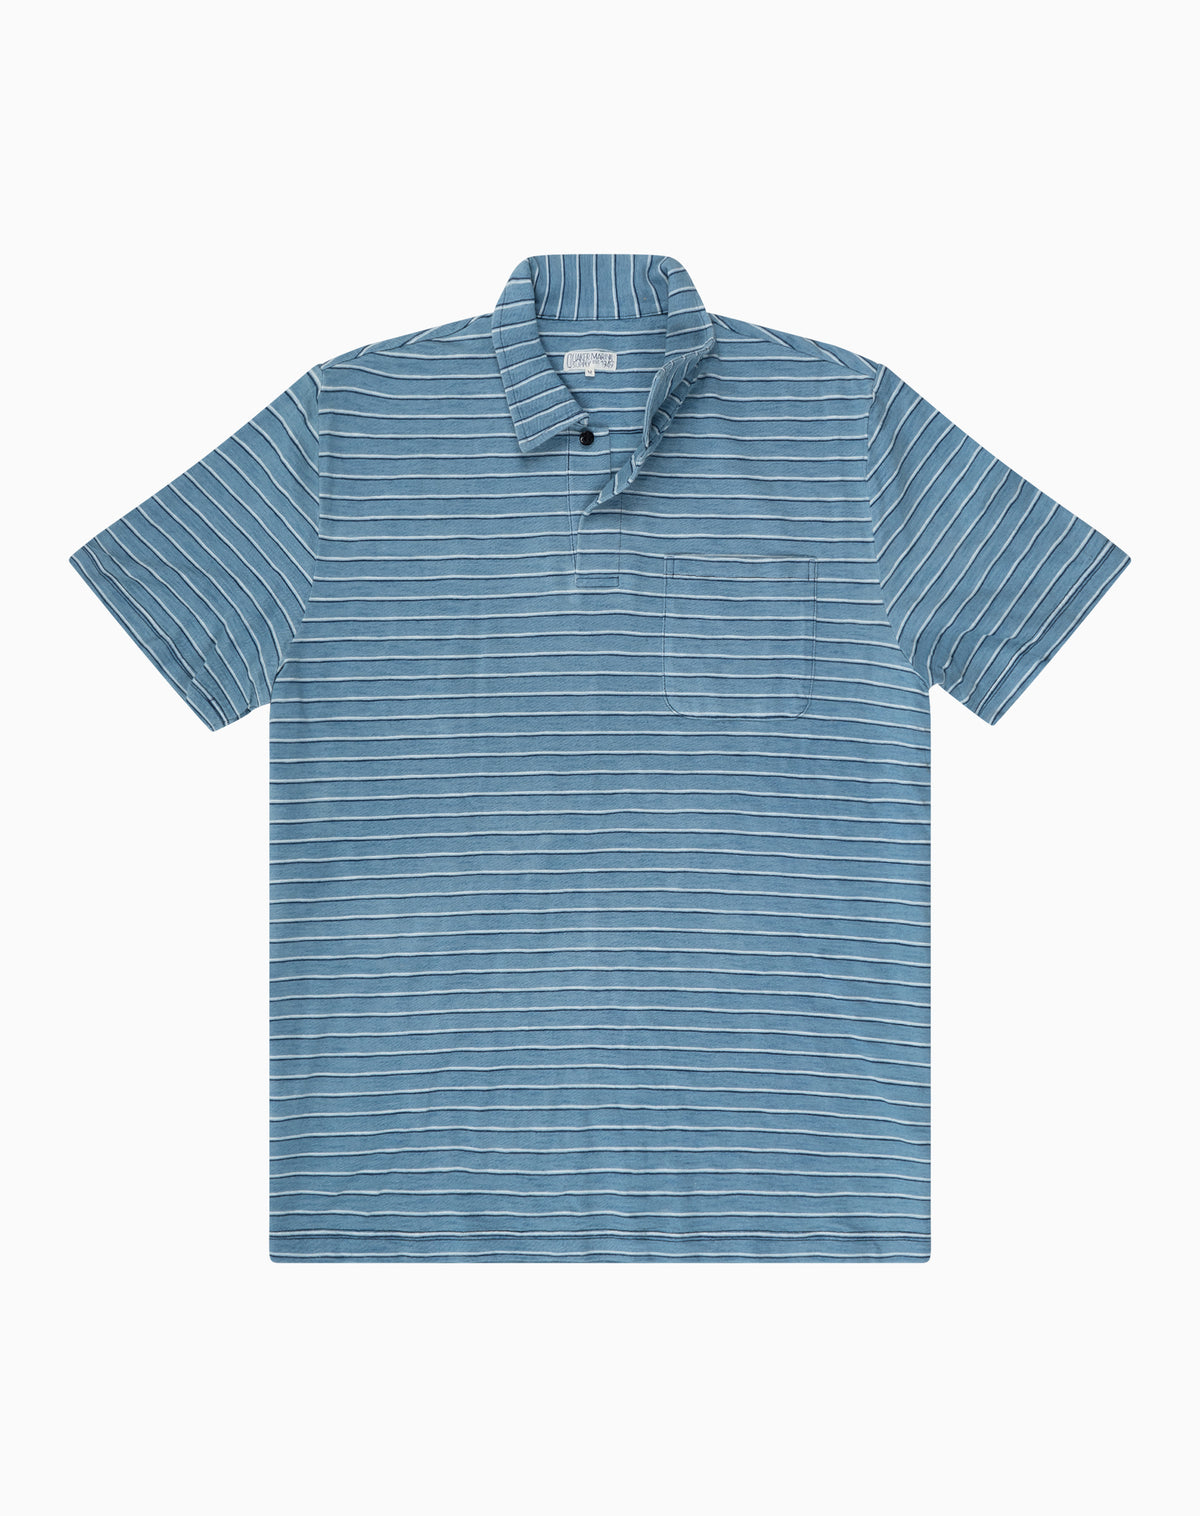 Indigo Polo in Light Wash Stripe